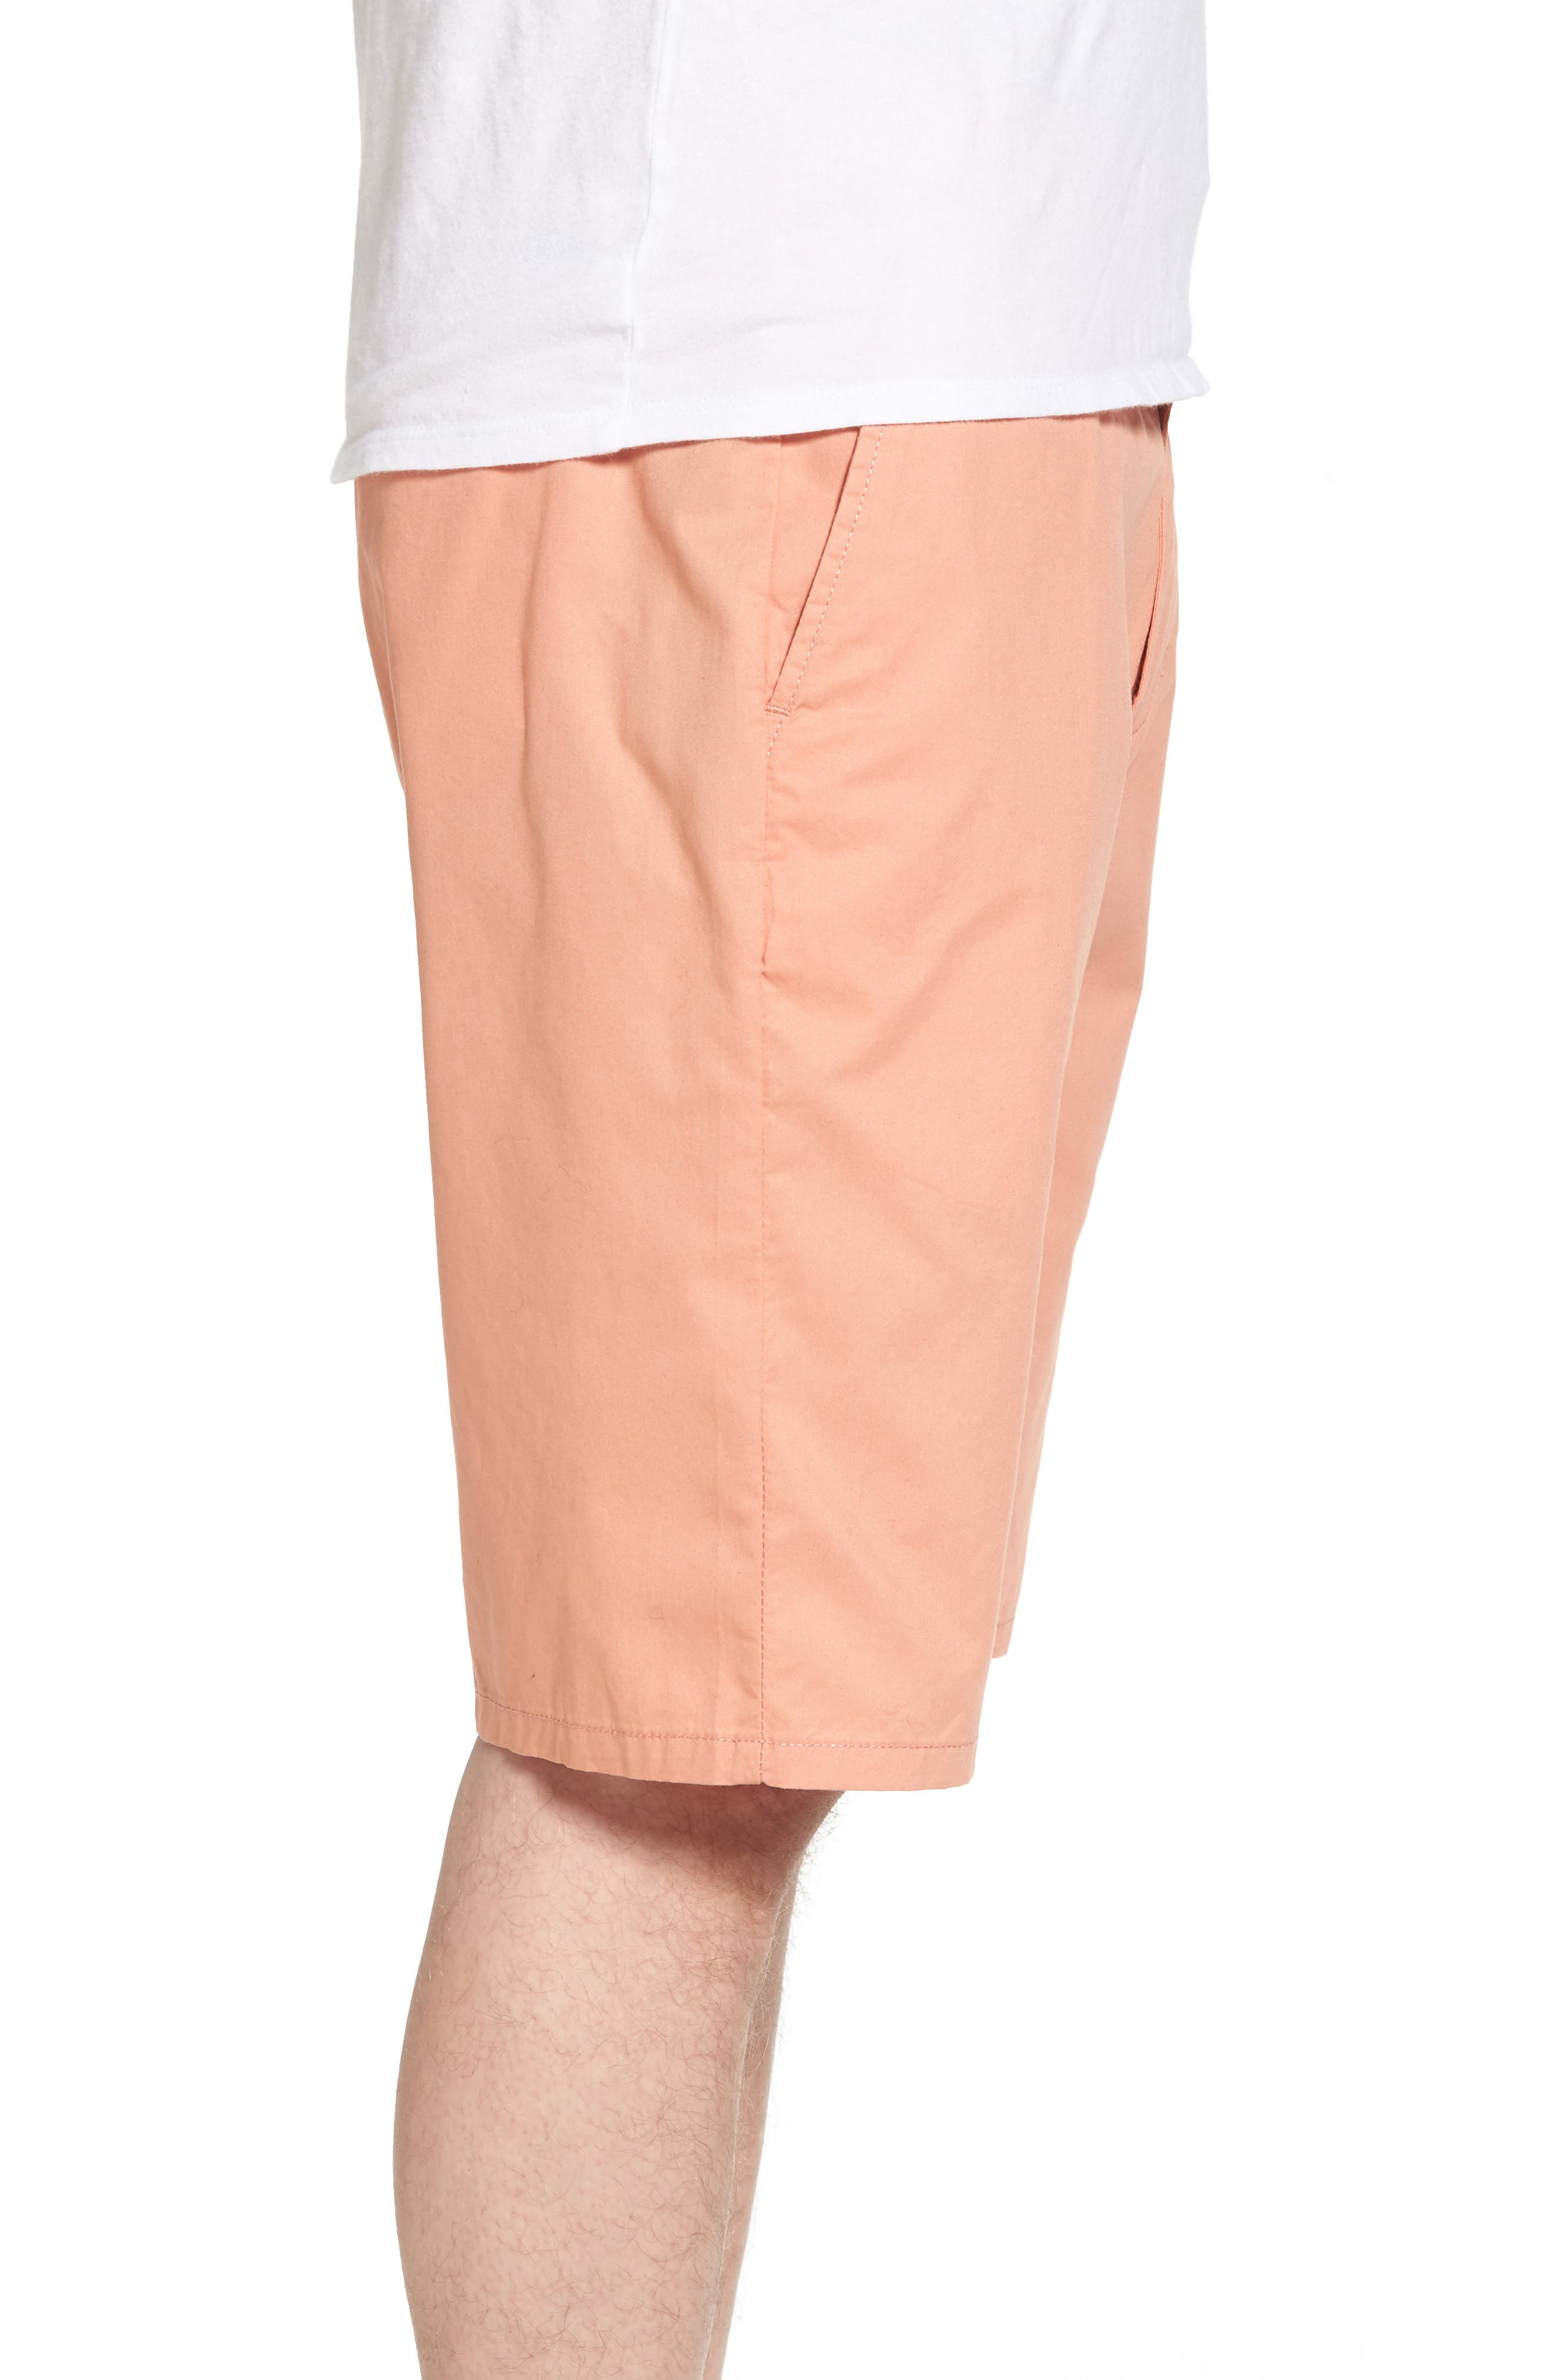 Straggler Light Shorts,                             Alternate thumbnail 3, color,                             Dusty Rose